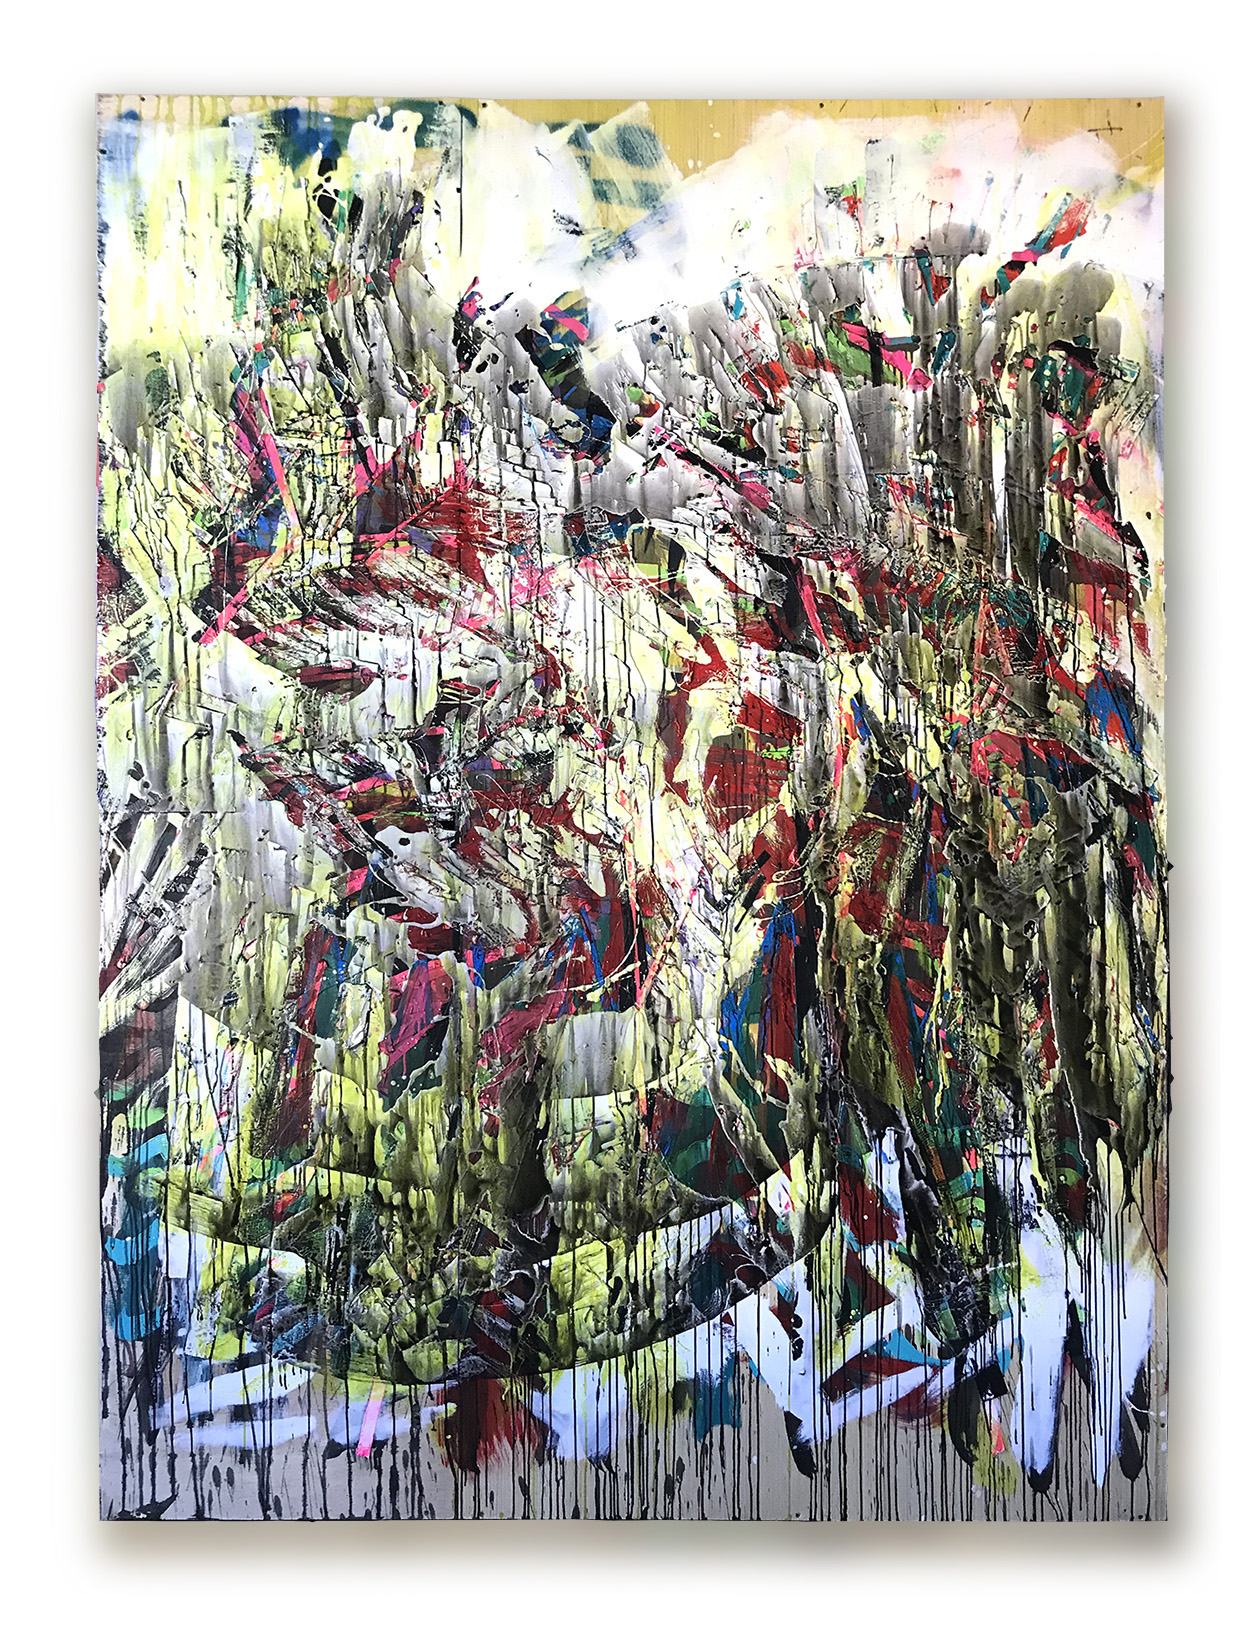 """ JUNGLE II "" wood, metal & acrylic 2.43 X 1.82 meters -2019"